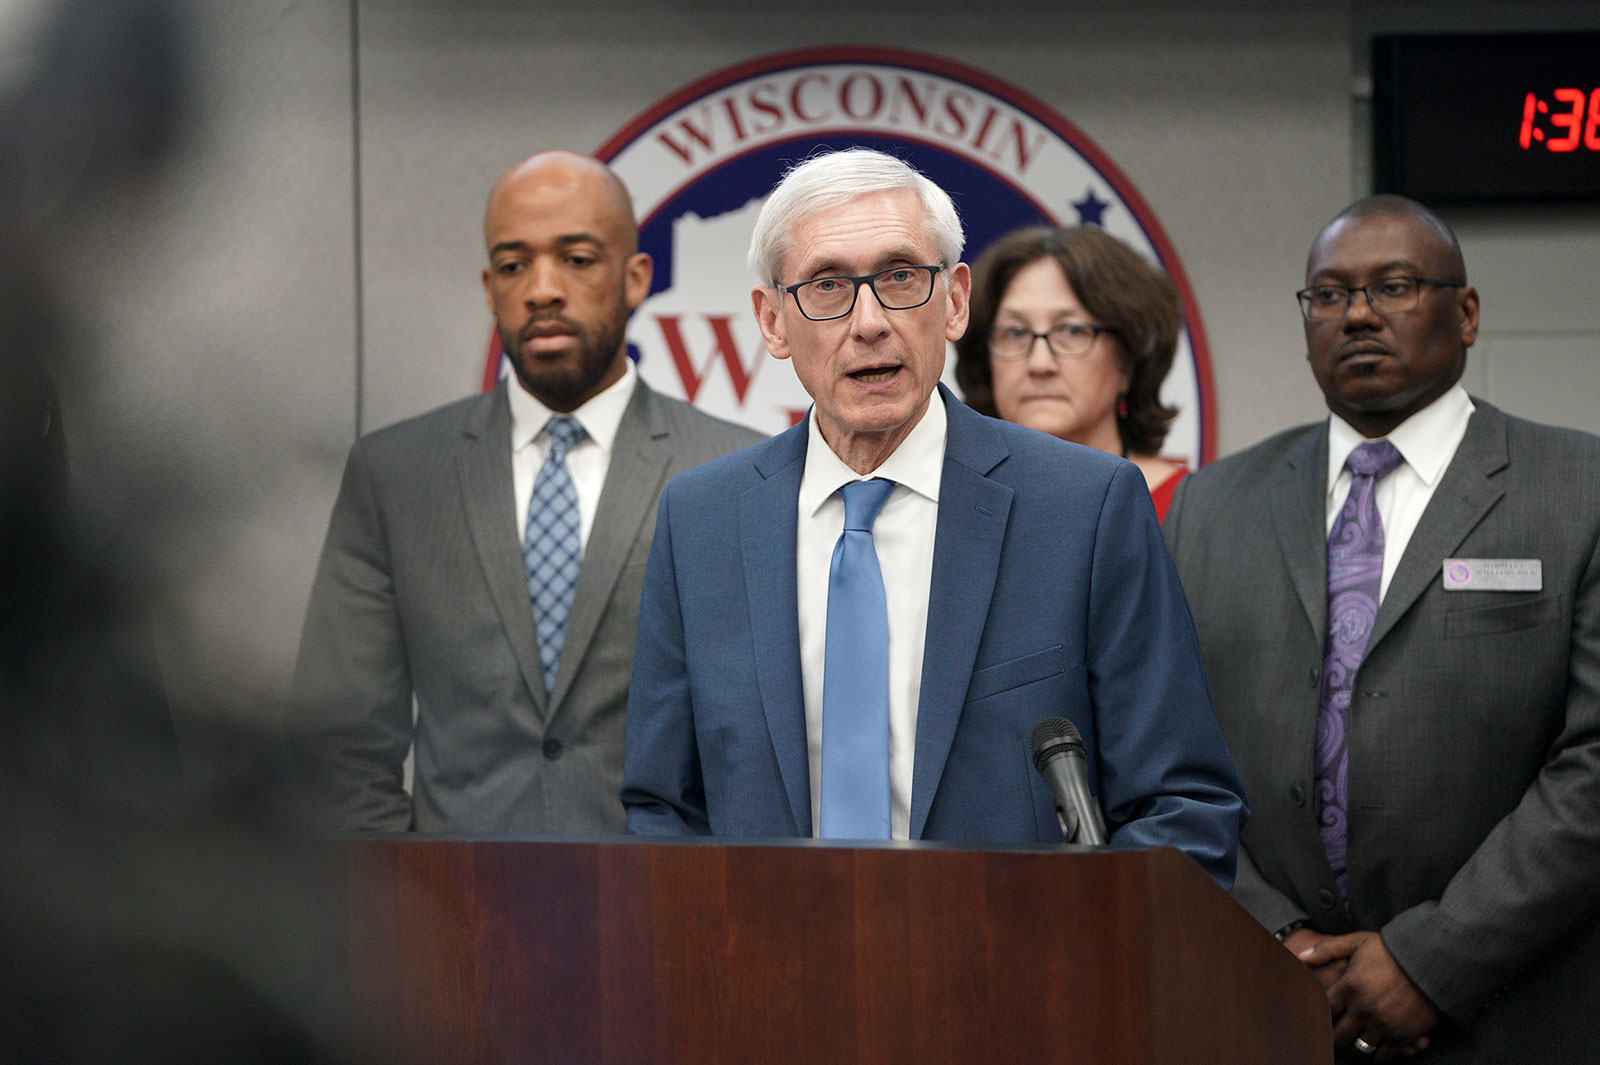 Gov. Tony Evers declares a public health emergency on Thursday, March 12, in response to a growing number of cases coronavirus.